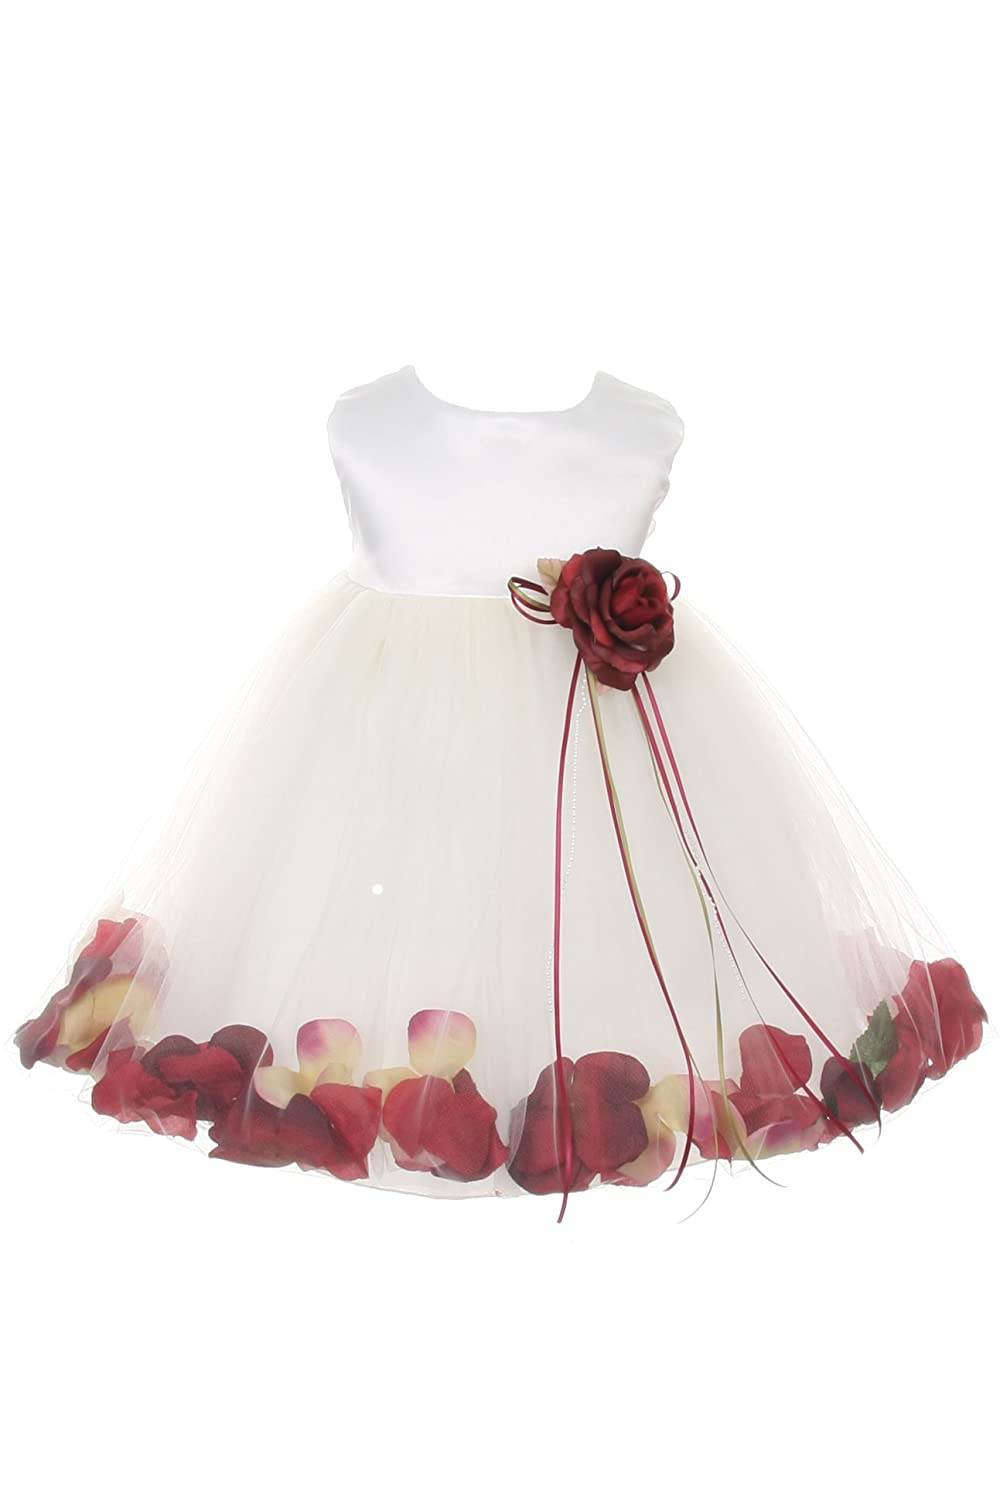 14c3d2a08a7 Amazon.com  23 Colors Satin Bodice Flower Baby Girl Pageant Petal Dress   Infant S-XL  Clothing